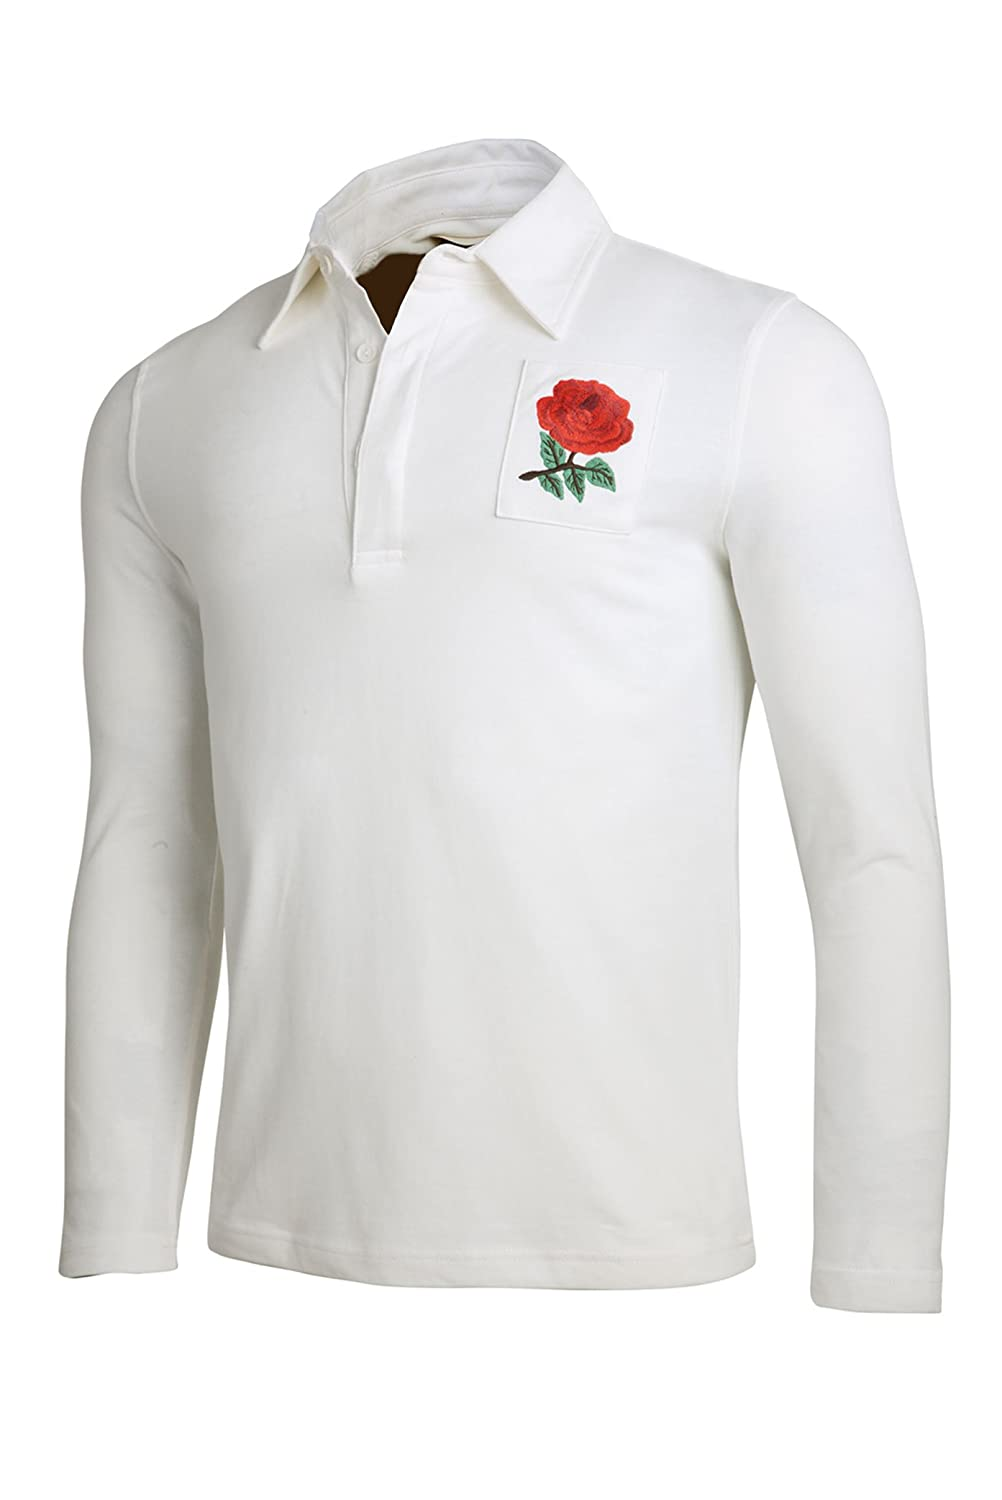 Unofficial England Rugby Union - England take on Wales in ...